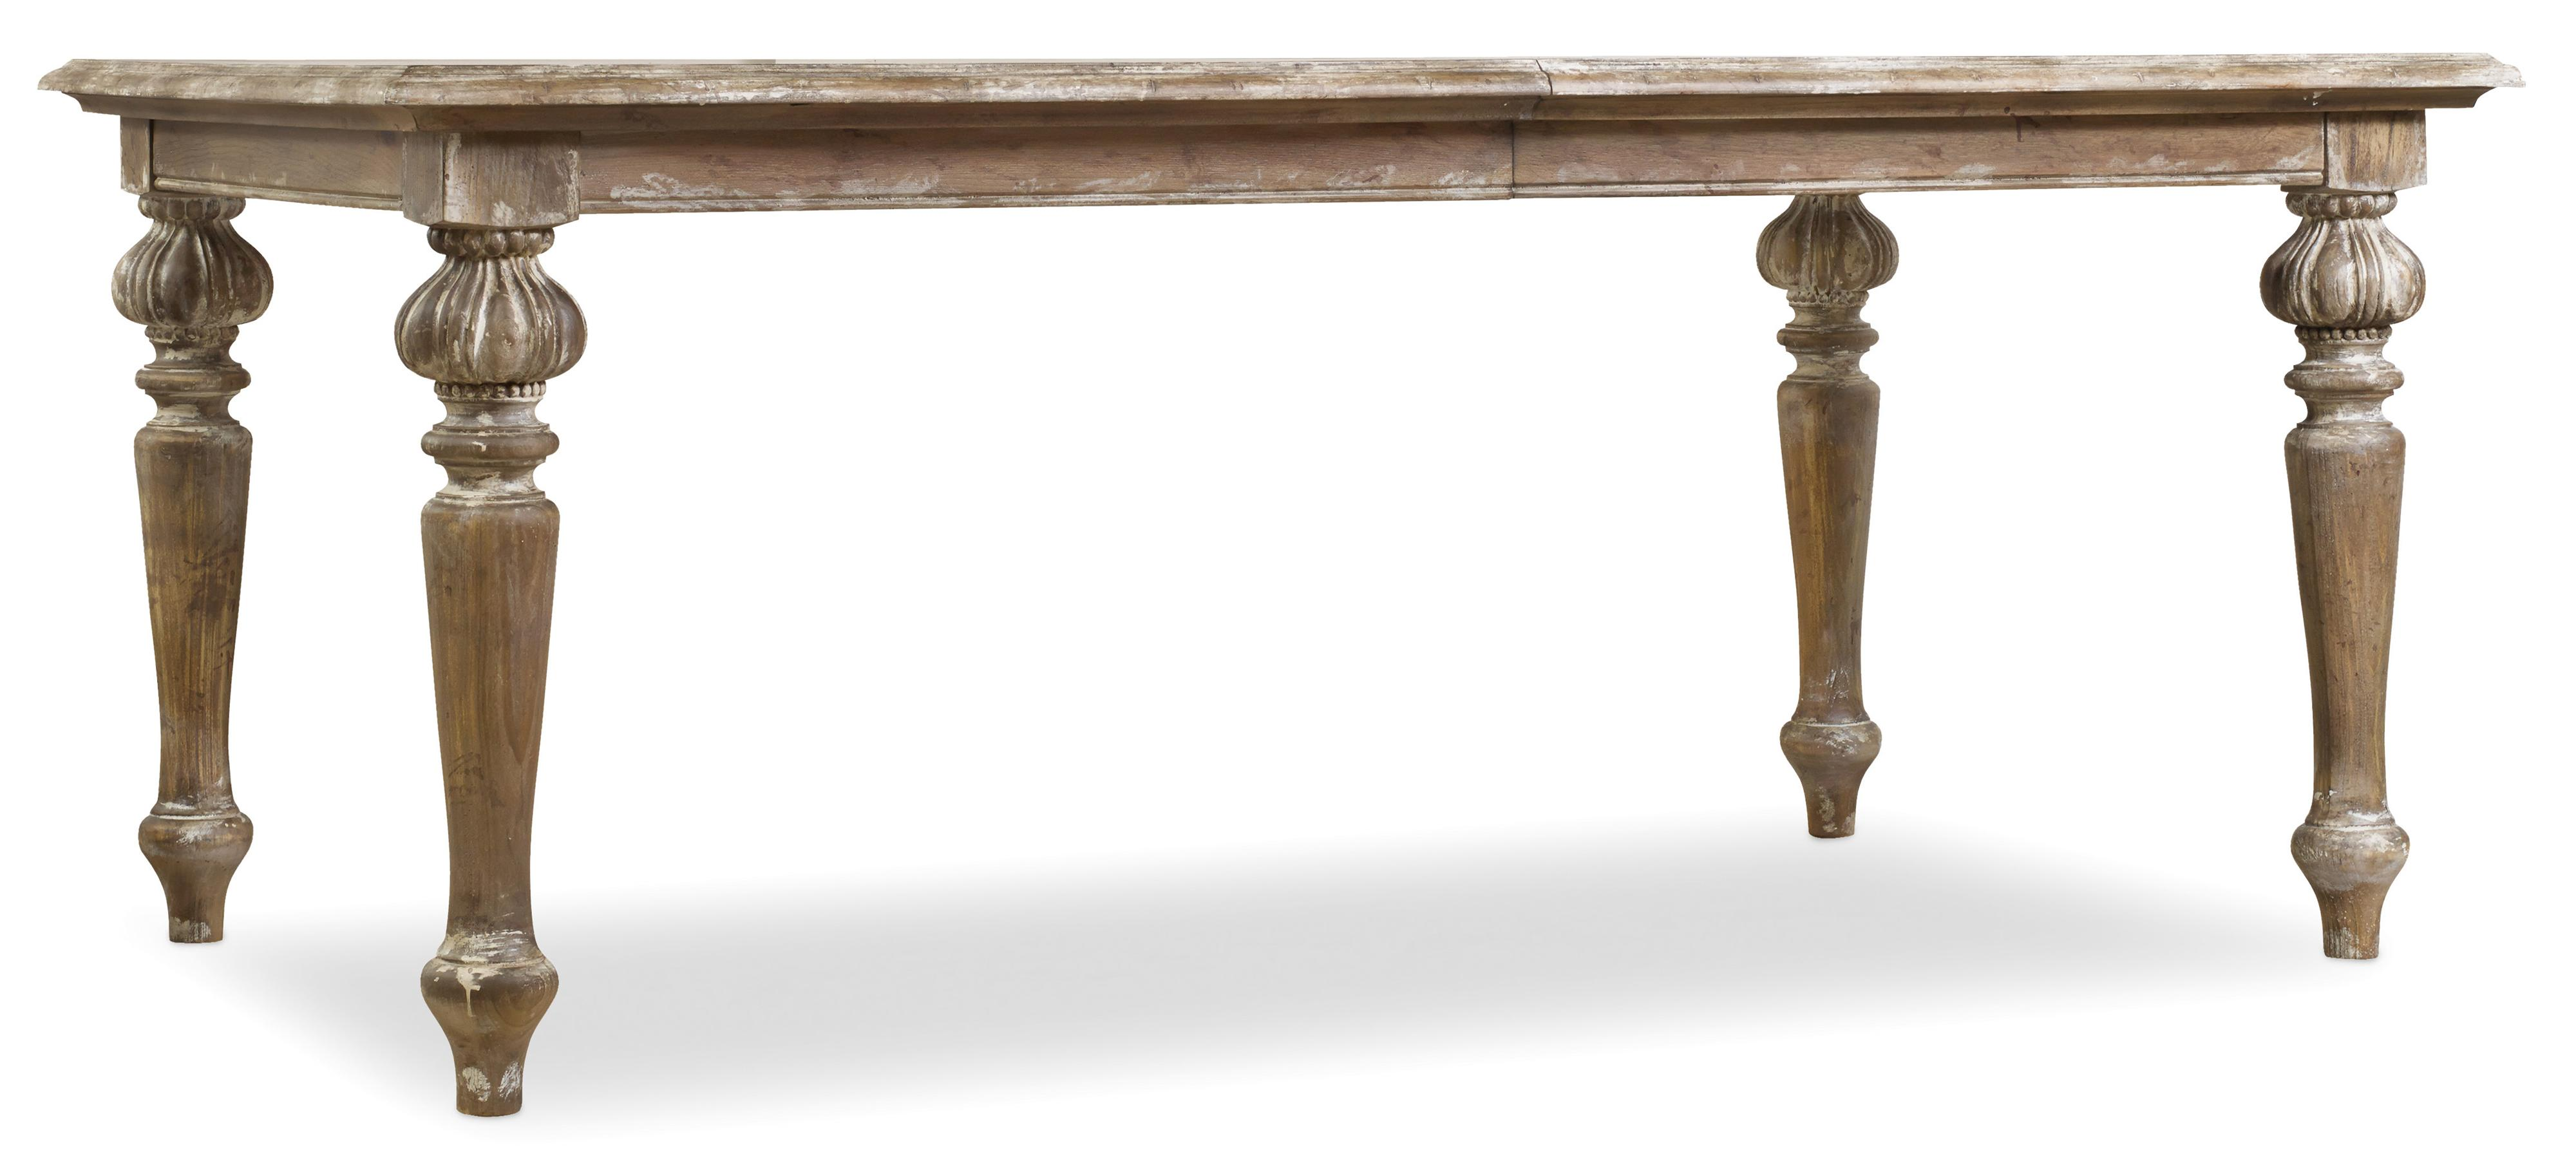 Hooker Furniture Chatelet Rectangle Leg Dining Table - Item Number: 5300-75200